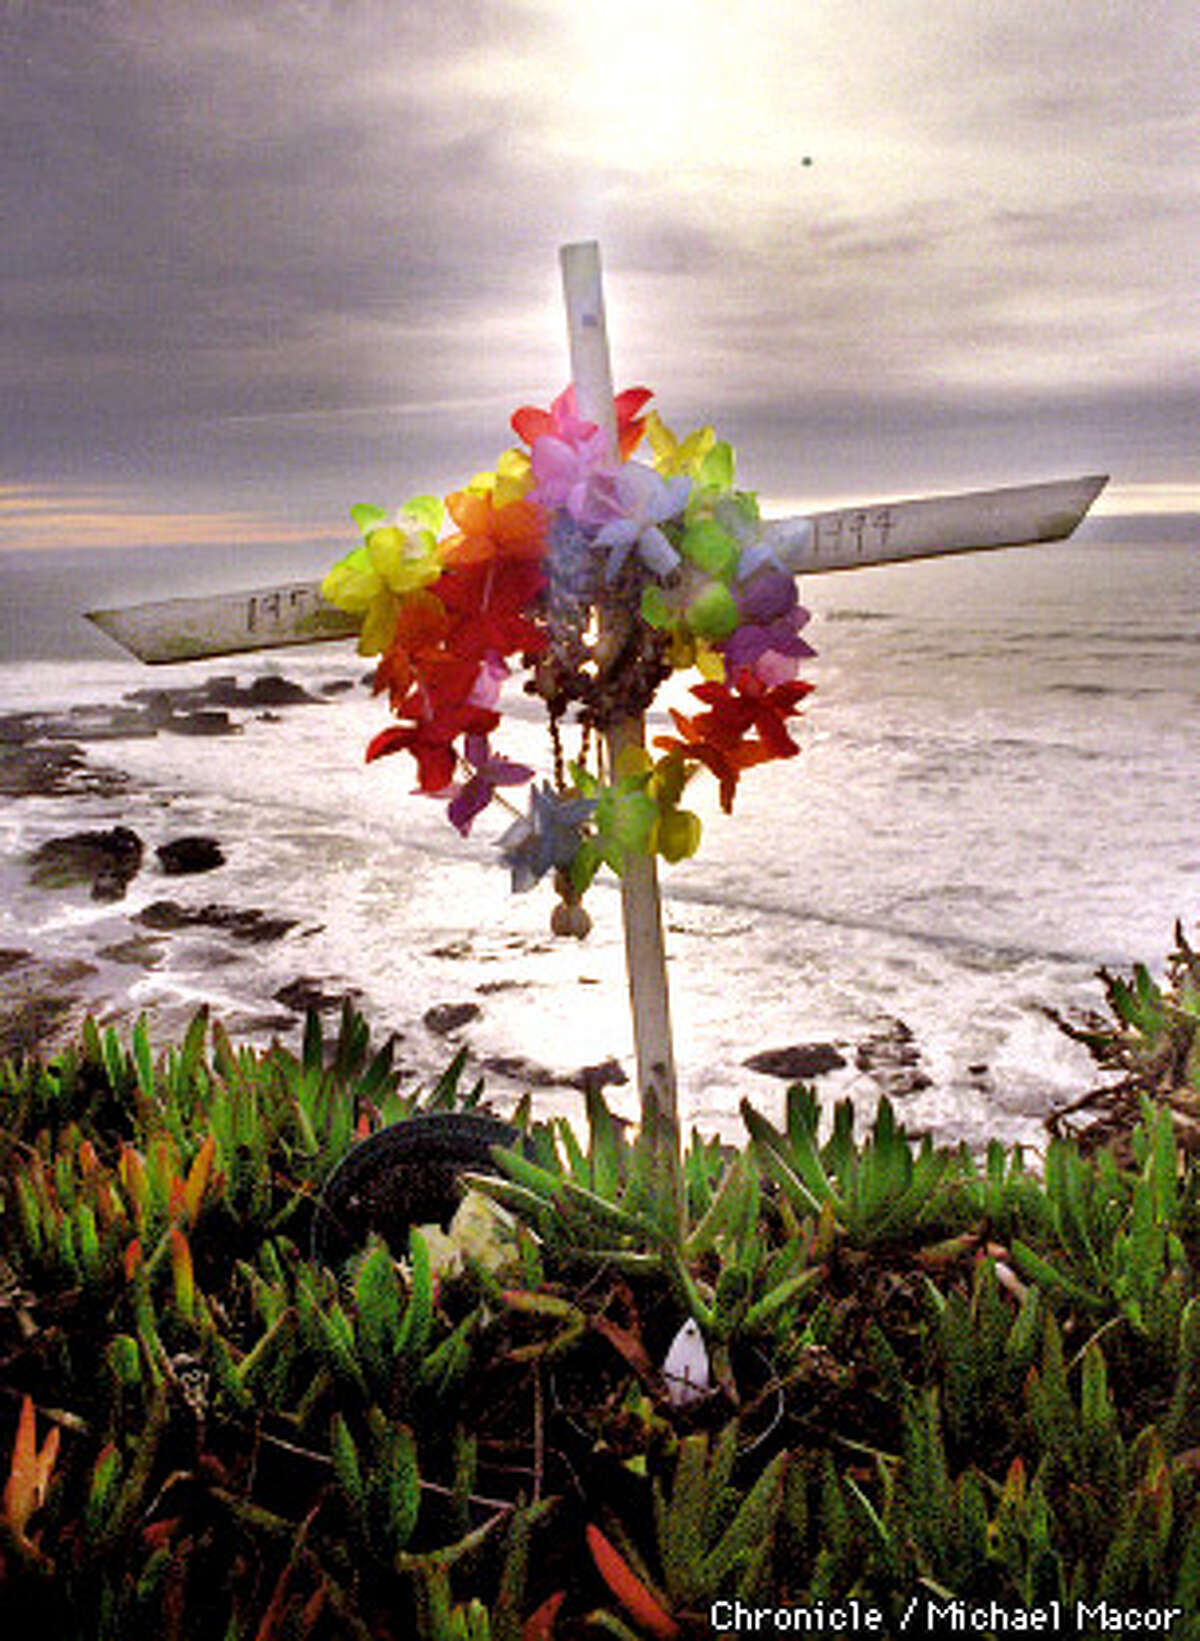 """Famous surfing location near Half Moon Bay. """"Mavericks"""" draws big wave riders from around the world. A memorial to famous big wave rider Mark Foo eho lost his life surfing Mavericks. A reminder of the power of the Maverick break. Chronicle Photo: Michael Macor"""